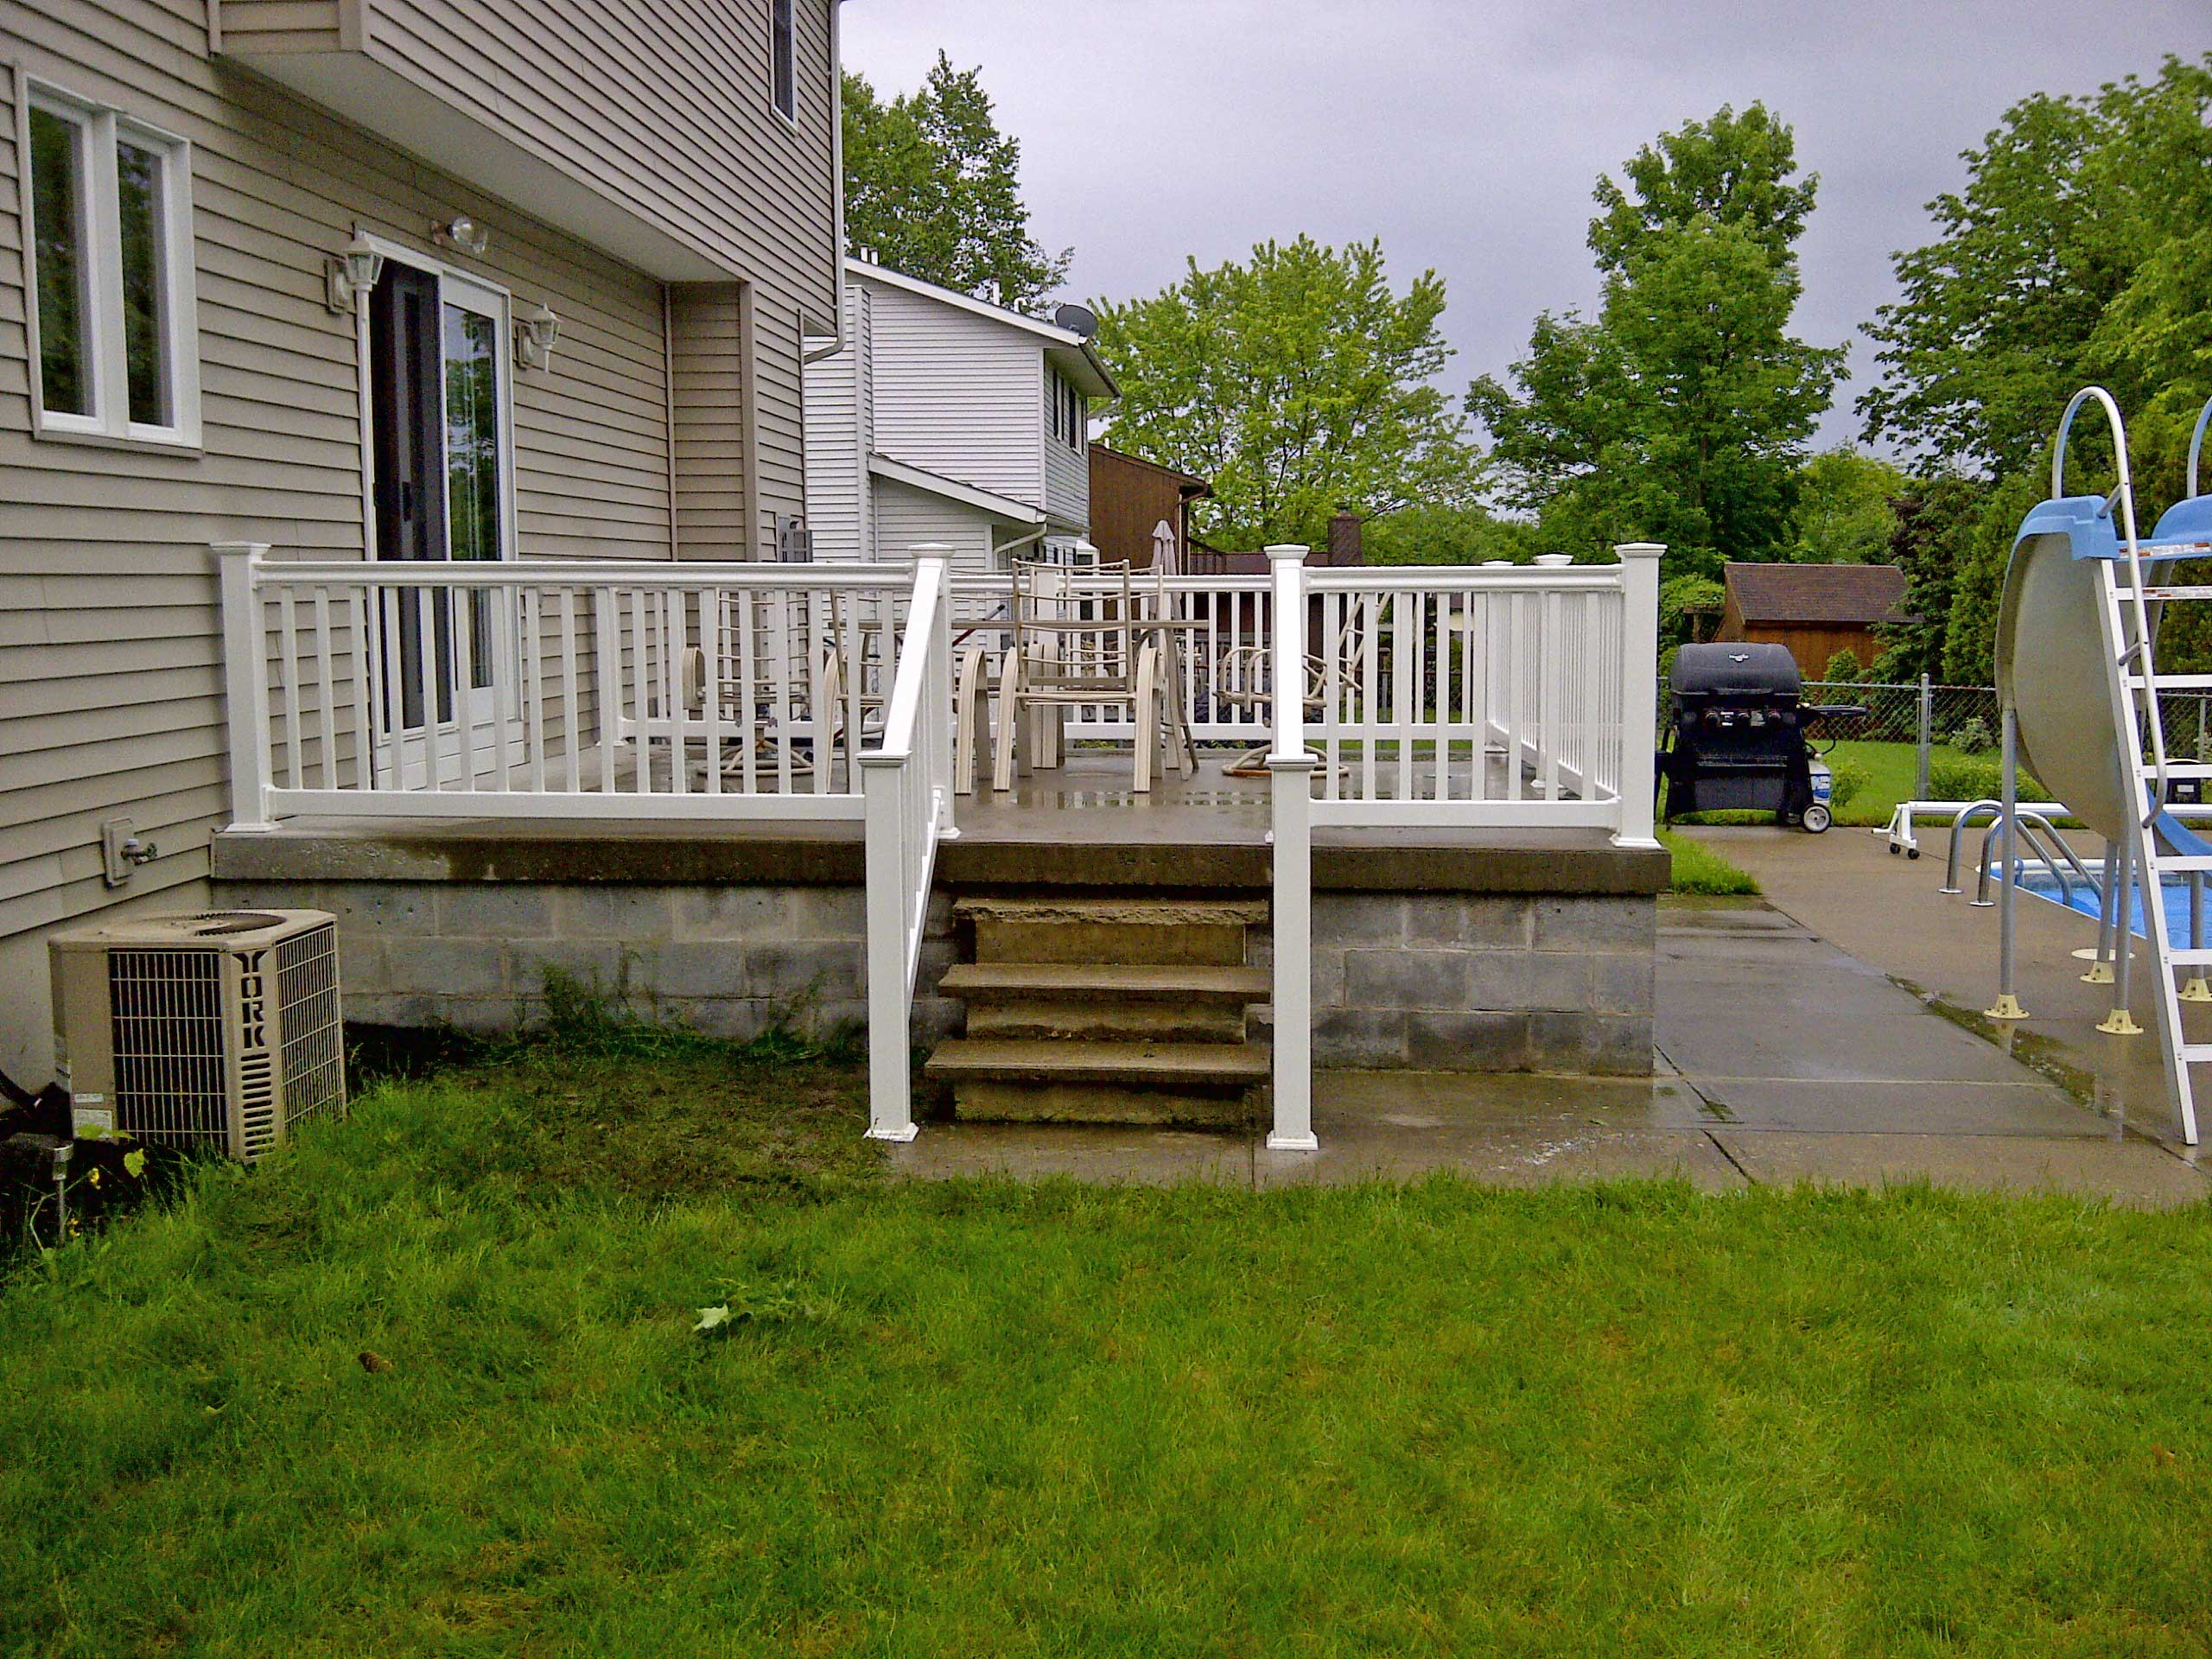 How To Install Vinyl Railing On Concrete Porch HOUSE STYLE ...